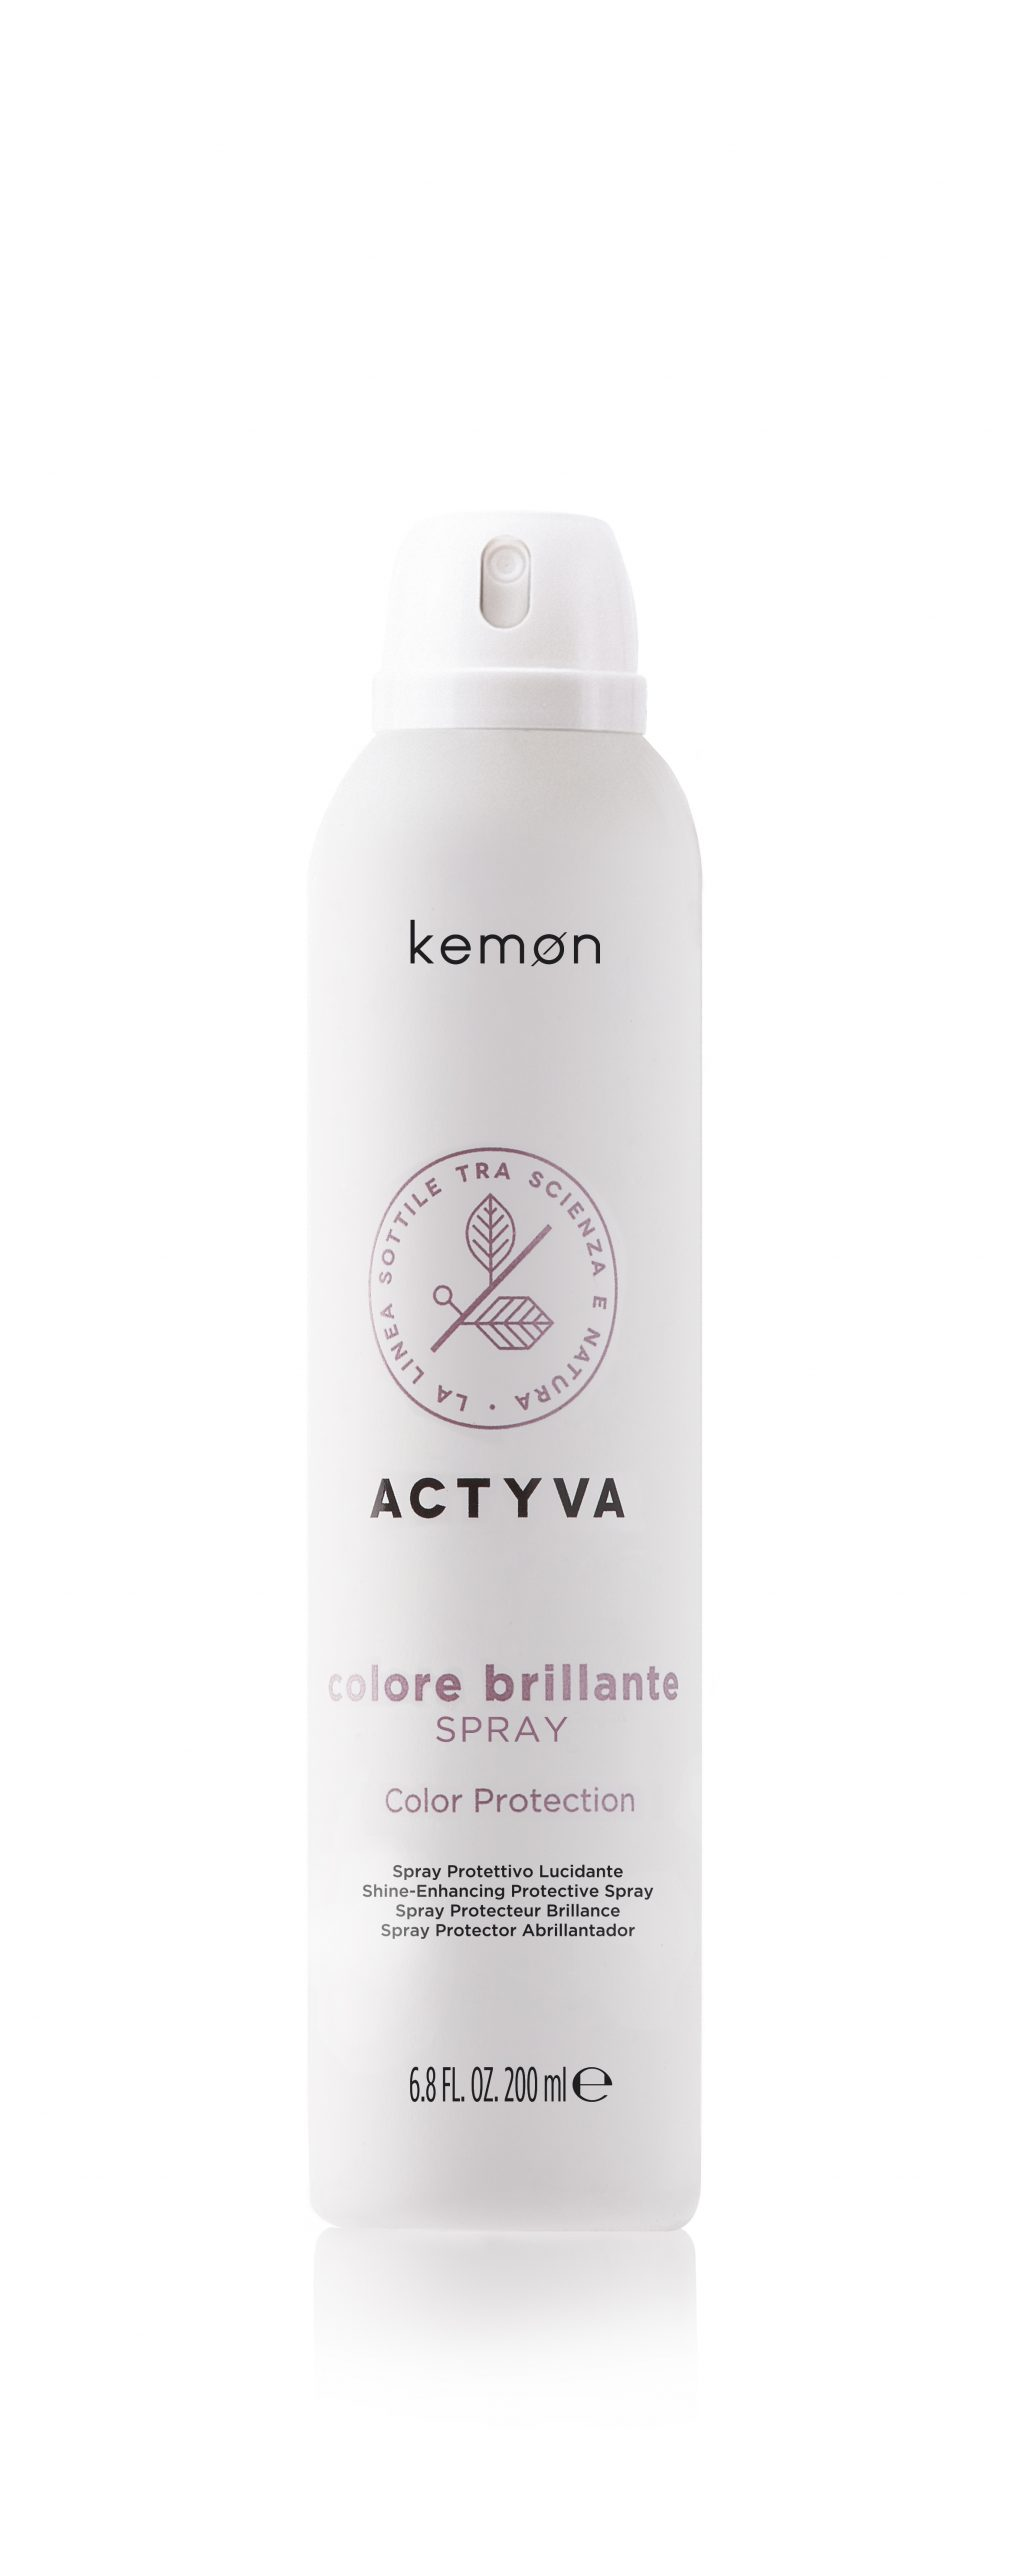 Actyva Colore Brillante spray 200 ml scaled